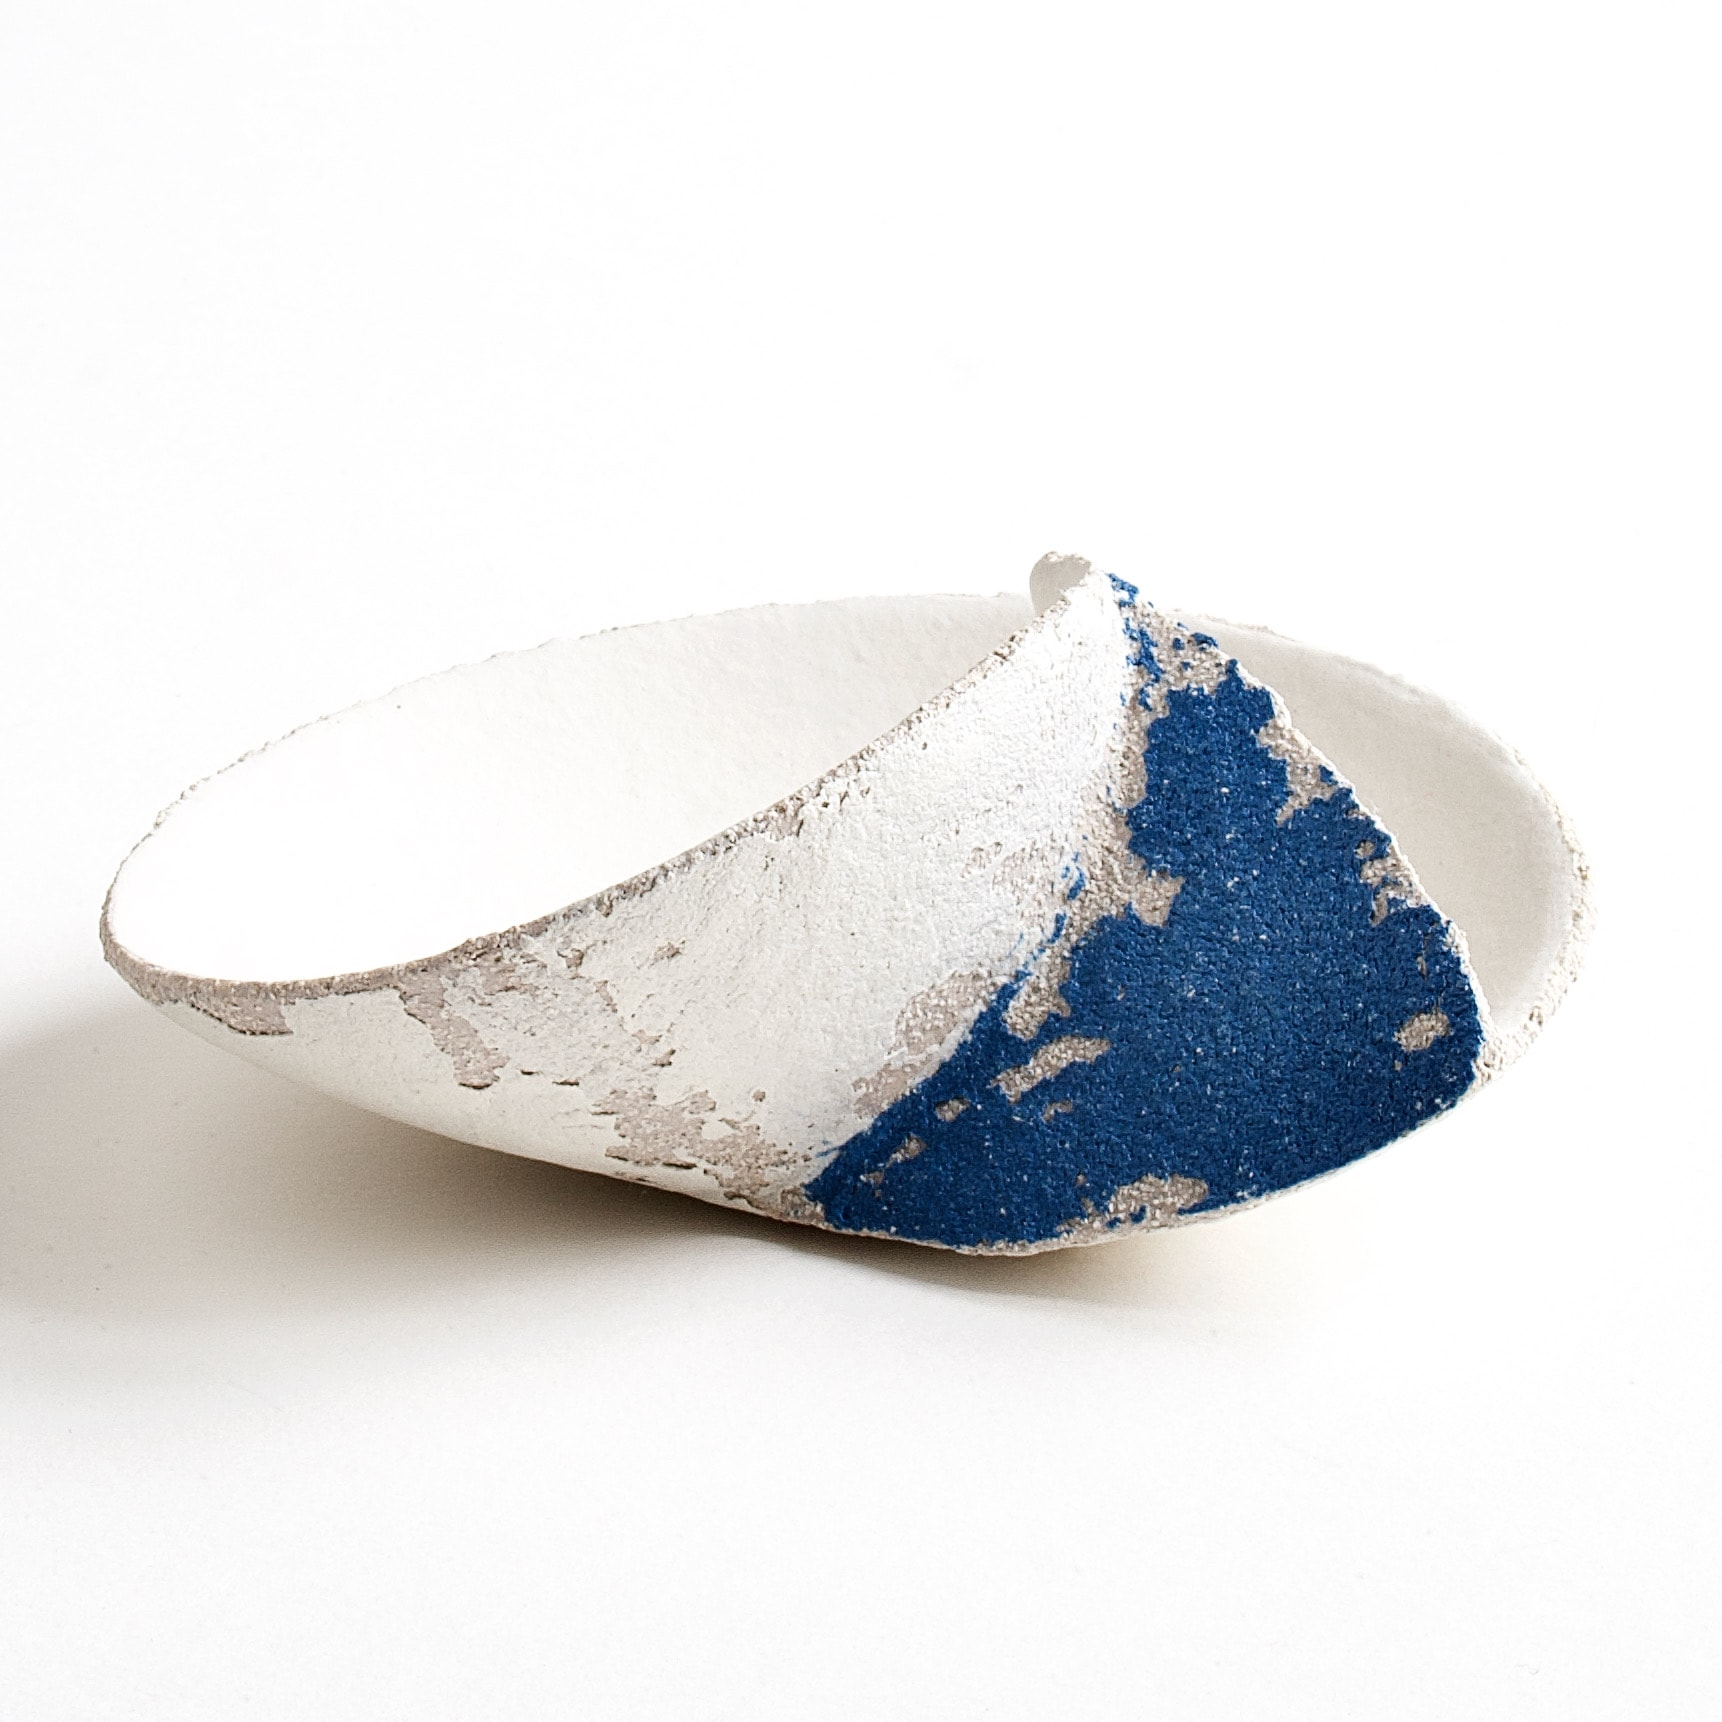 """<span class=""""link fancybox-details-link""""><a href=""""/artists/79-clare-conrad/works/8129-clare-conrad-tiny-wave-dish-white-with-bright-blue-2021/"""">View Detail Page</a></span><div class=""""artist""""><strong>Clare Conrad</strong></div> b. 1948 <div class=""""title""""><em>Tiny wave dish, white with bright blue</em>, 2021</div> <div class=""""medium"""">wheel-thrown stoneware </div> <div class=""""dimensions"""">dia. 12 cm </div><div class=""""price"""">£132.00</div><div class=""""copyright_line"""">Own Art: £13.20 x 10 Months, 0% APR</div>"""